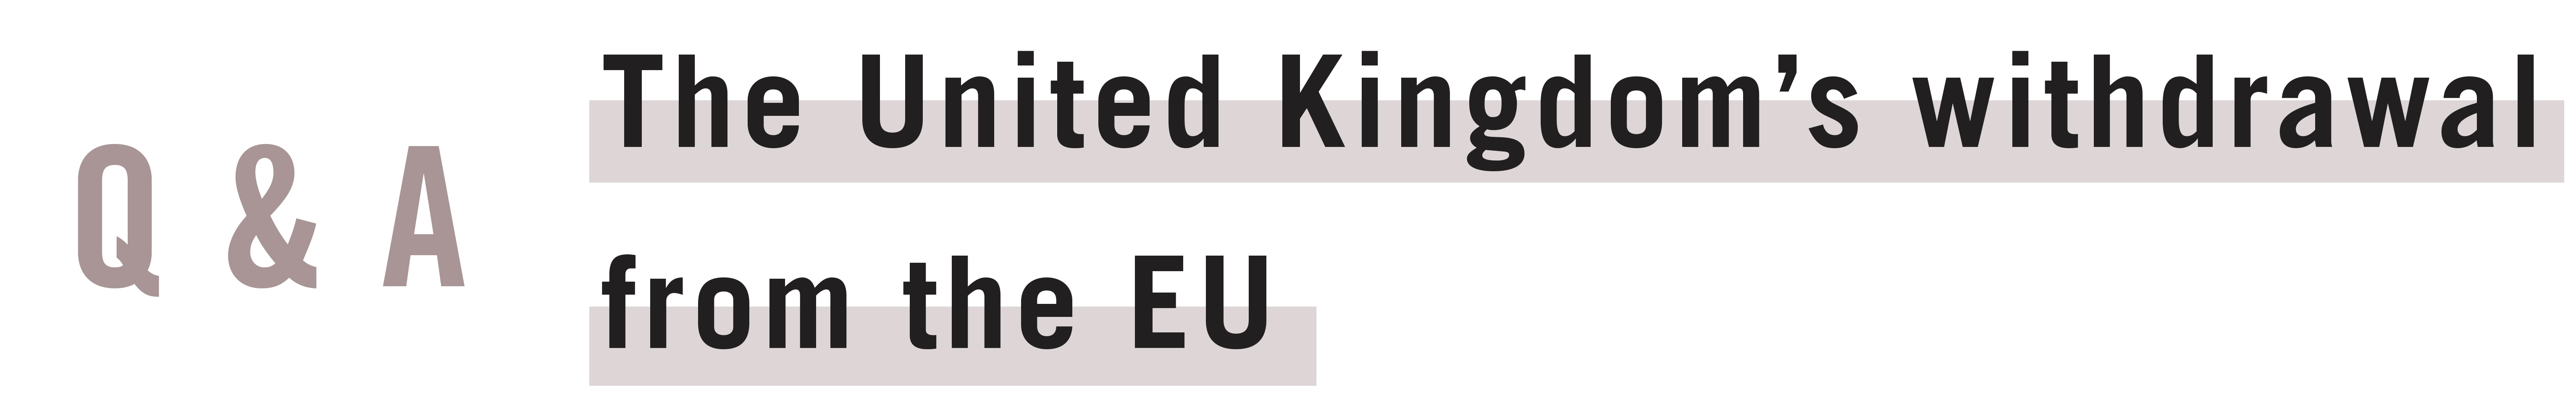 The United Kingdom's withdrawal from the EU